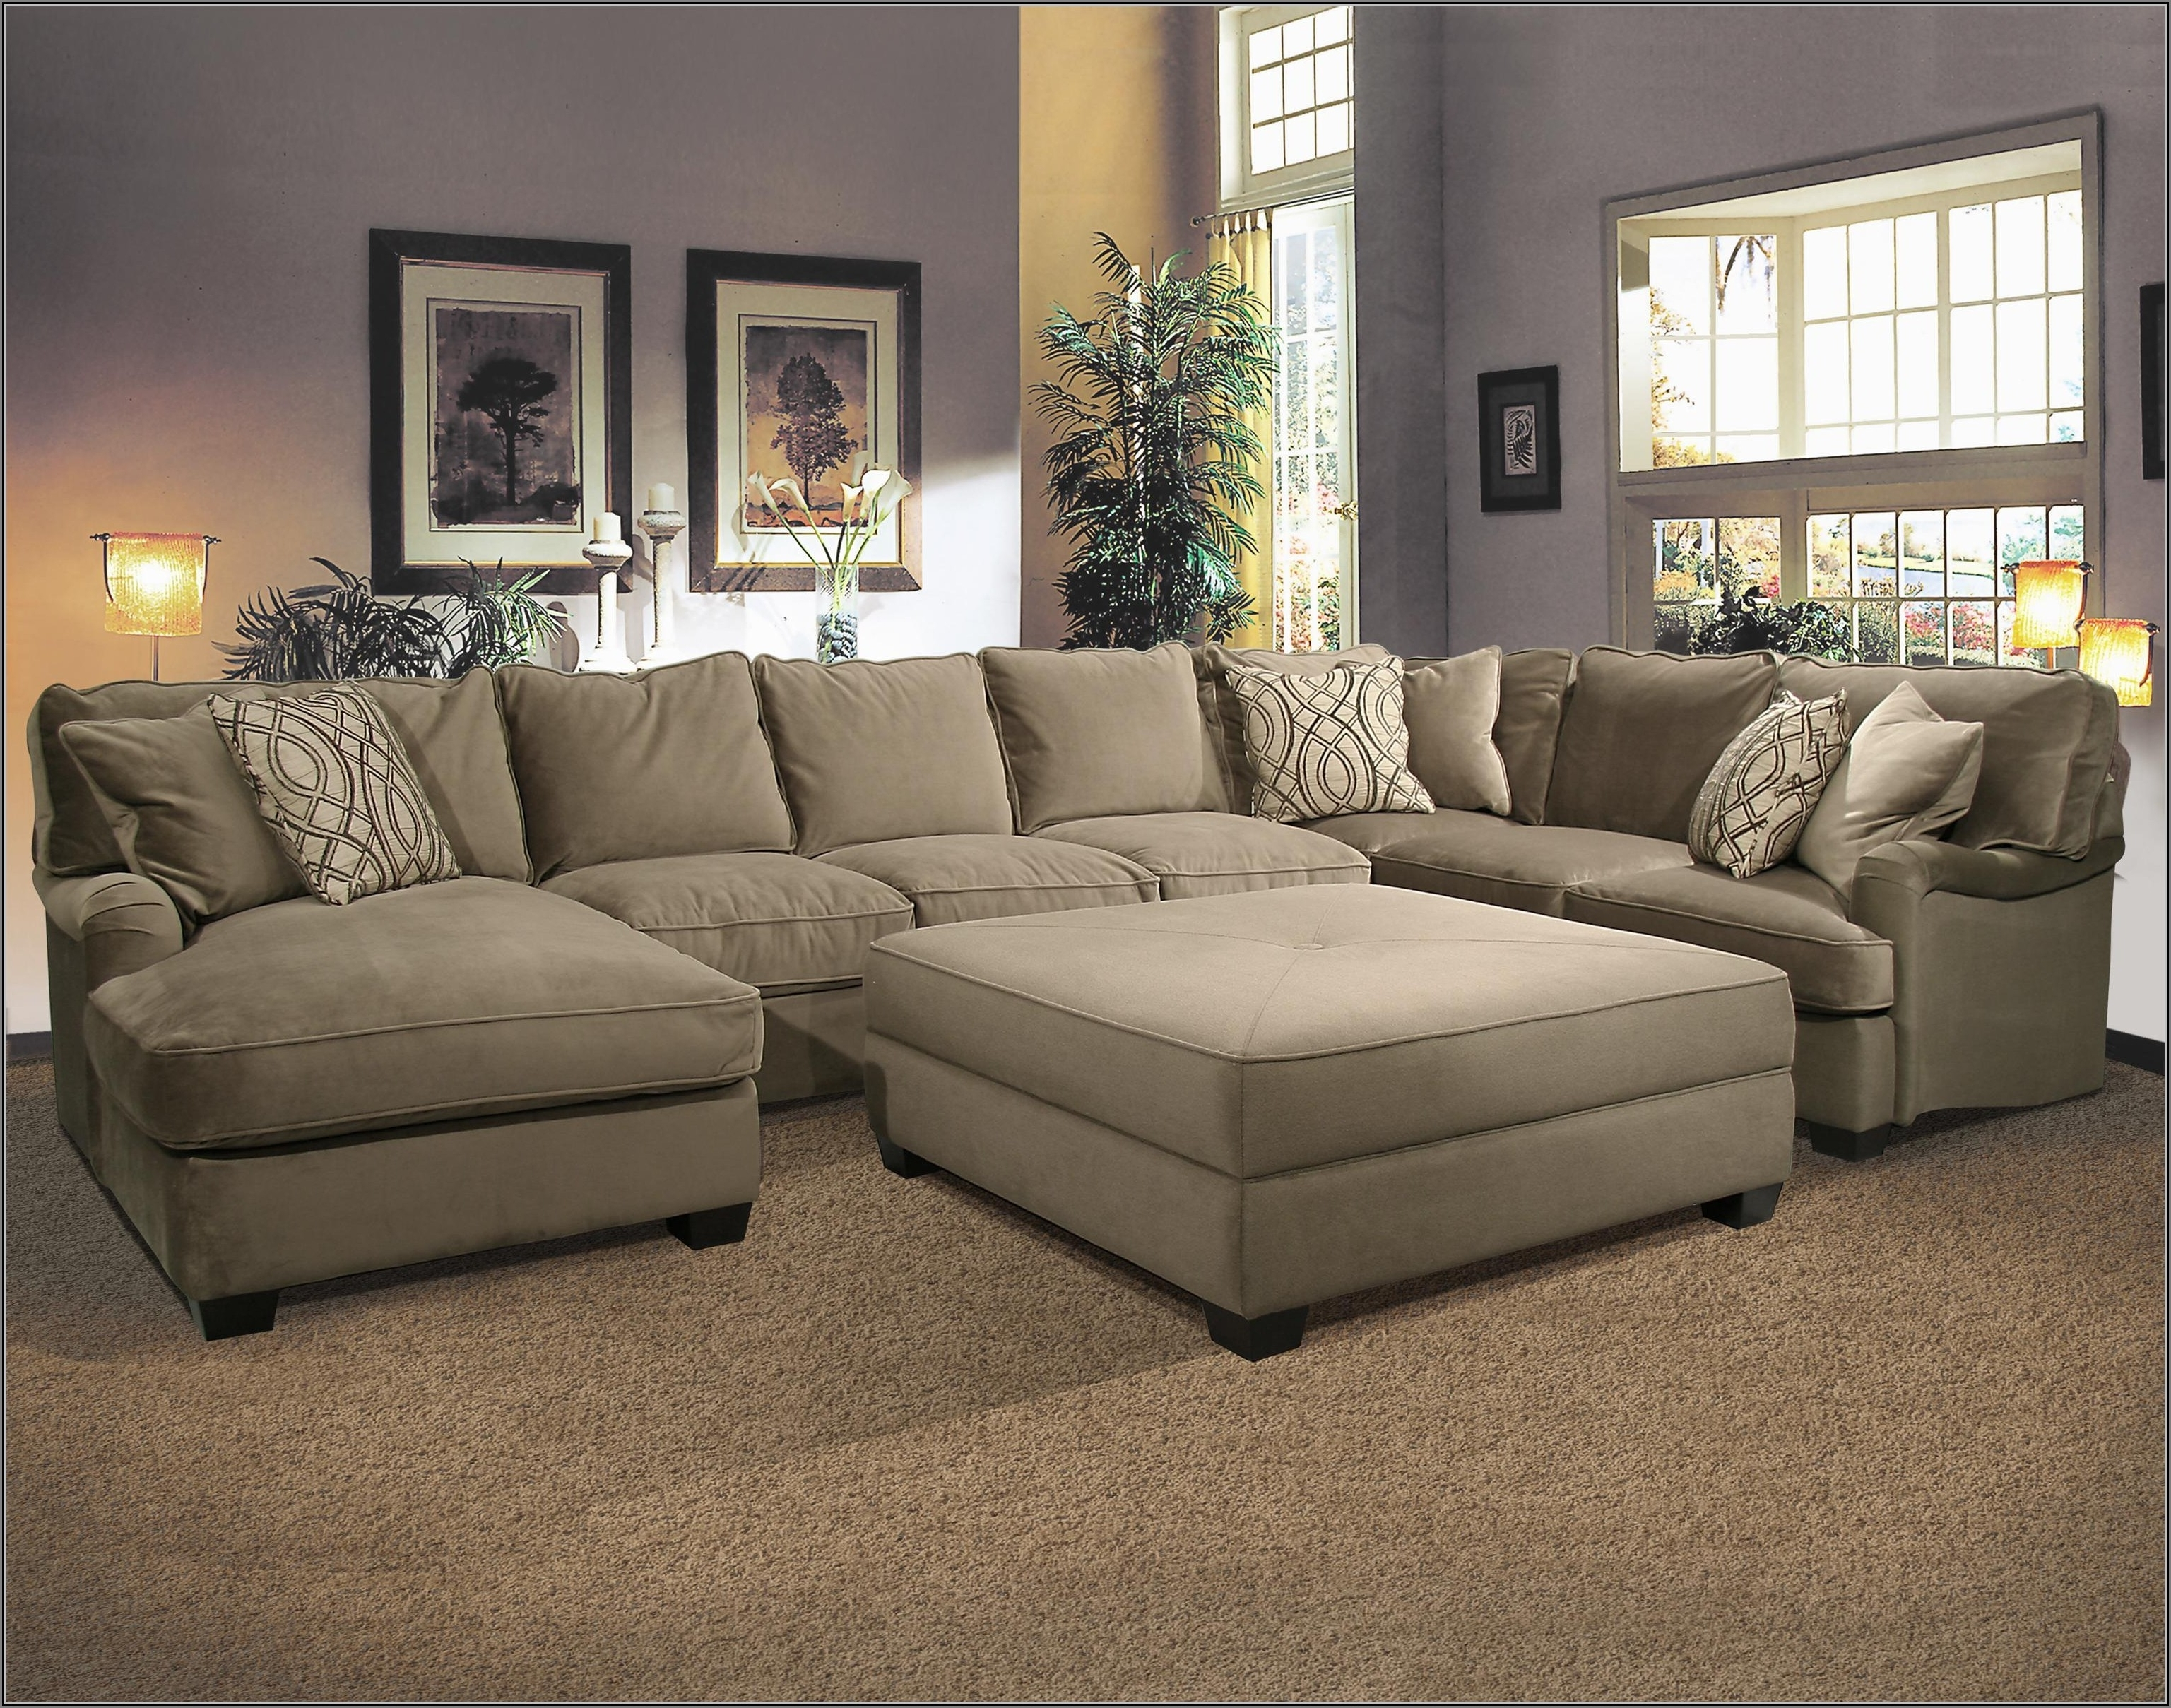 Most Popular Sectional Sofa With Large Ottoman Hotelsbacau Com Intended For Intended For Sectional Sofas With Ottoman (View 7 of 15)